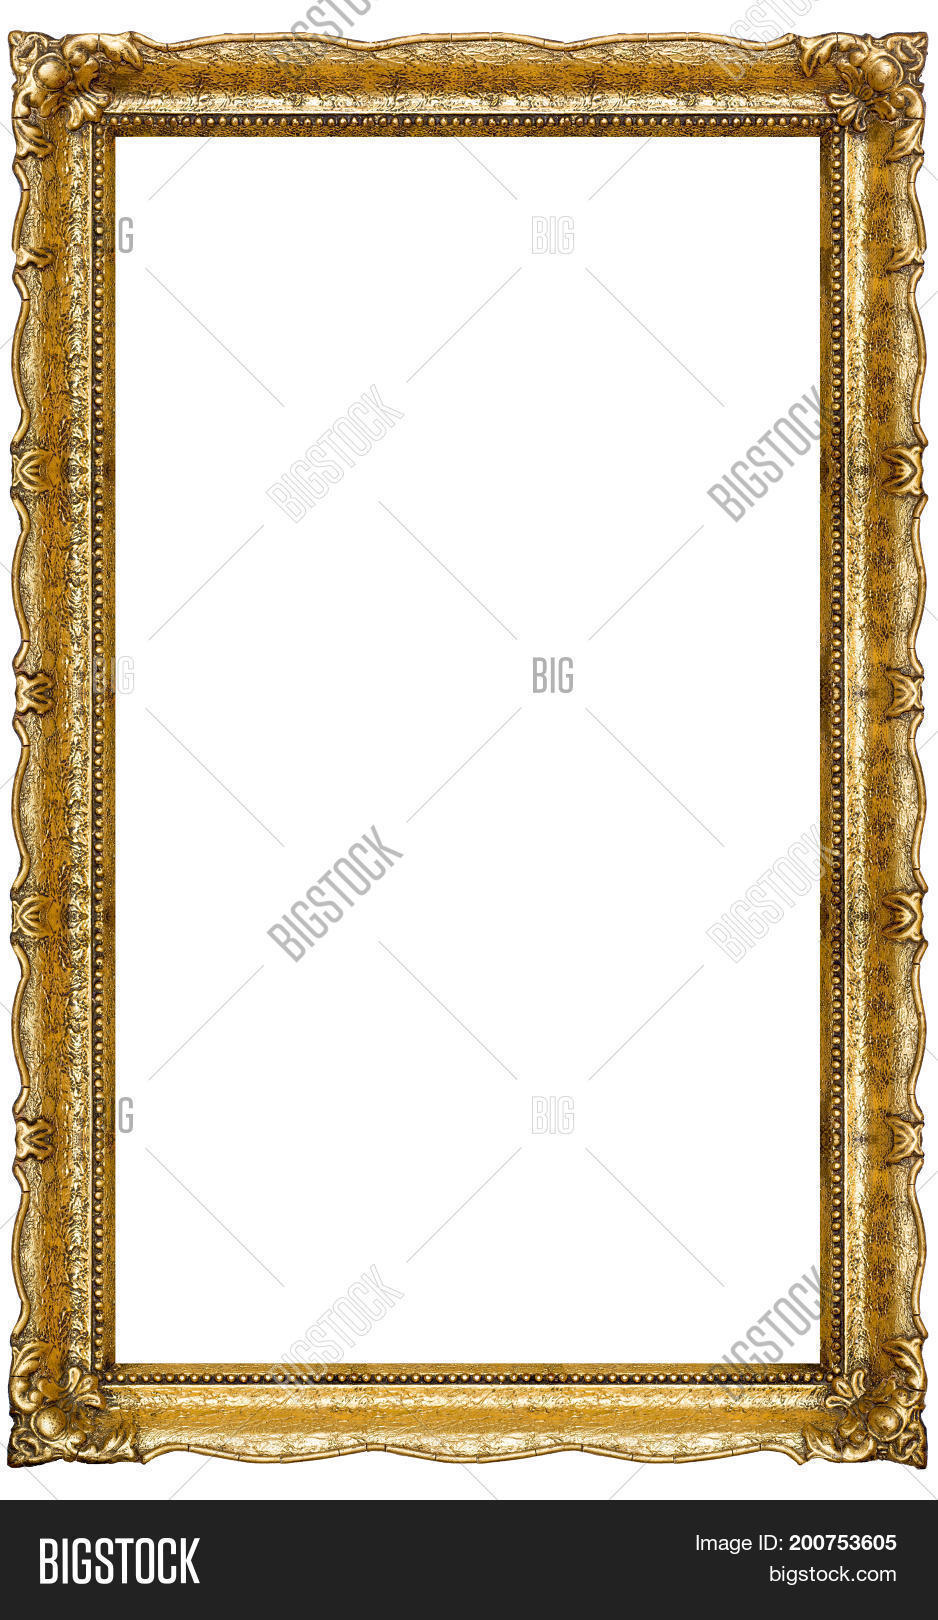 Very Big Old Gold Image & Photo (Free Trial) | Bigstock